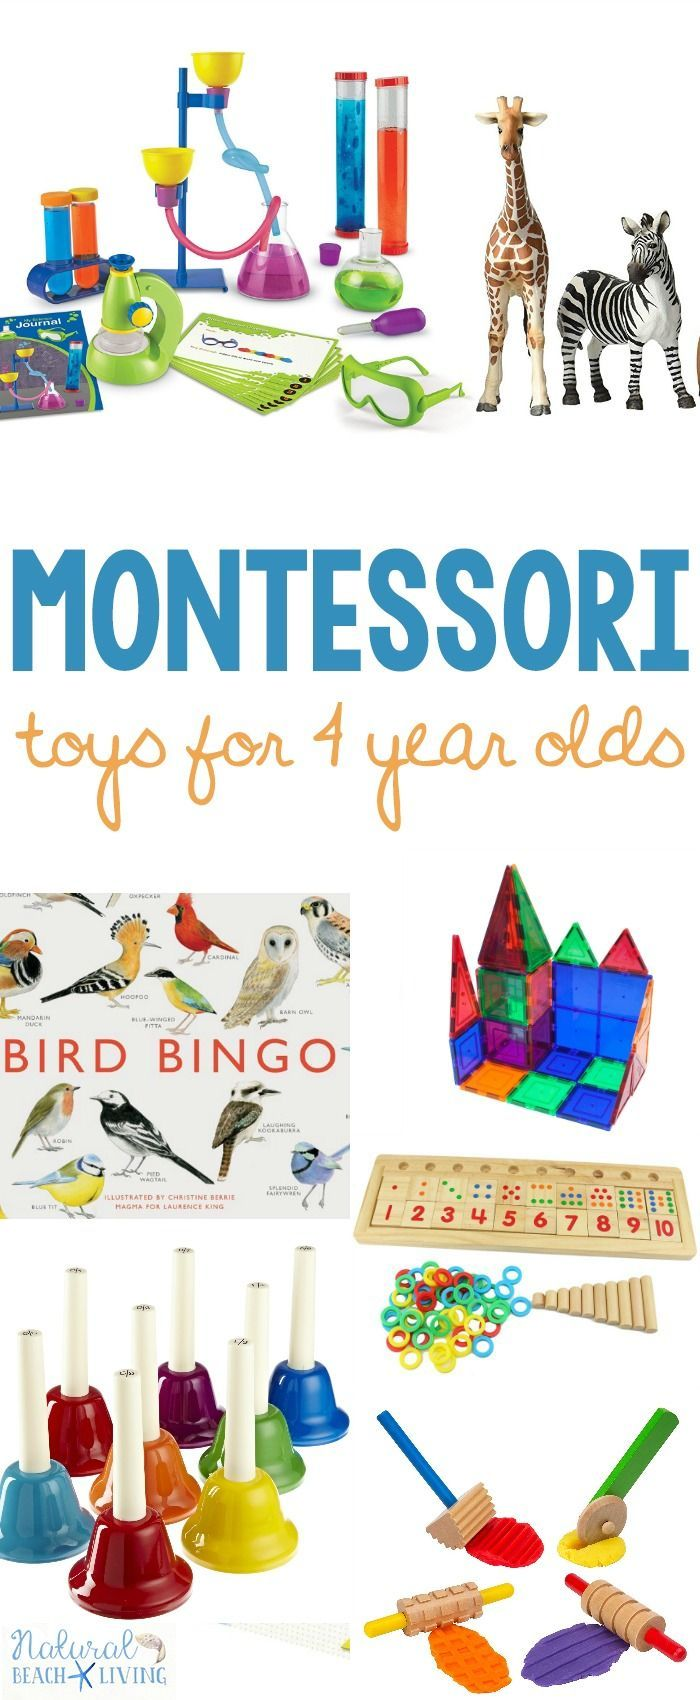 The Ultimate Guide for The Best Montessori Toys for 4 Year Olds, Montessori Toys, Toys for Preschoolers, Educational Toys, Montessori Toys Kindergarten,Gift #gift #Montessori #toys